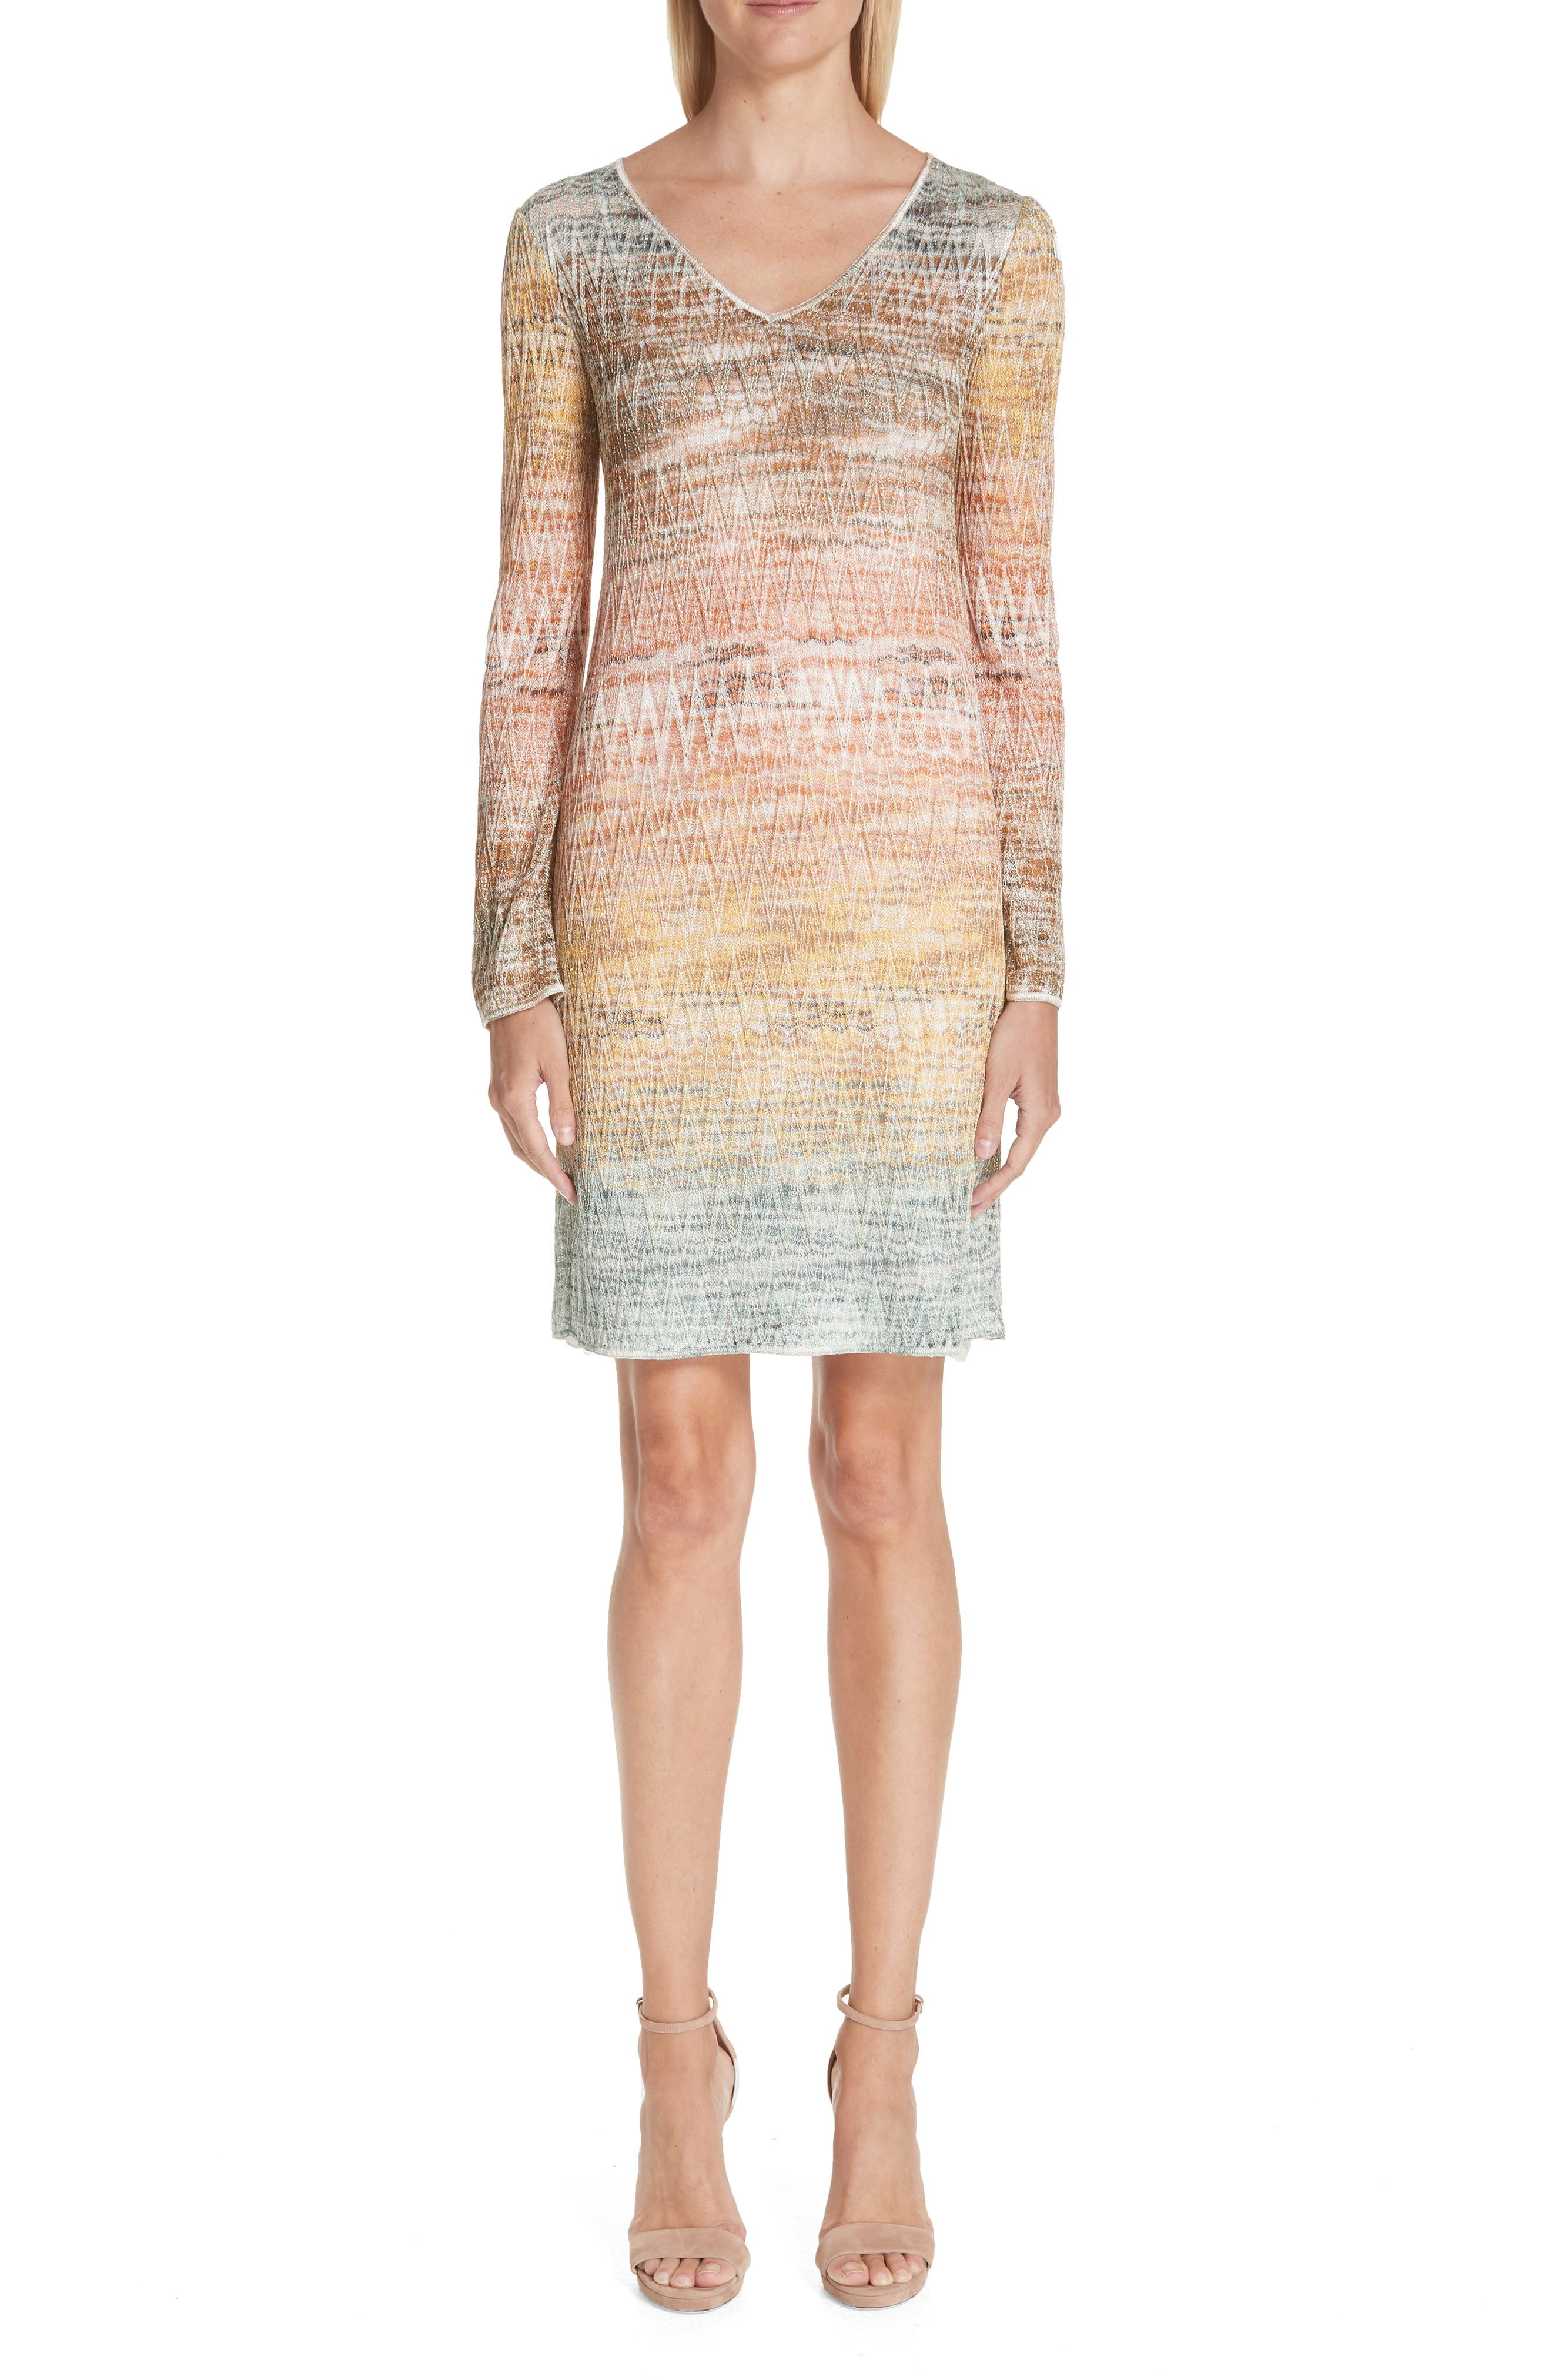 Missoni Zig Zag Metallic Knit Dress, US / 40 IT - White